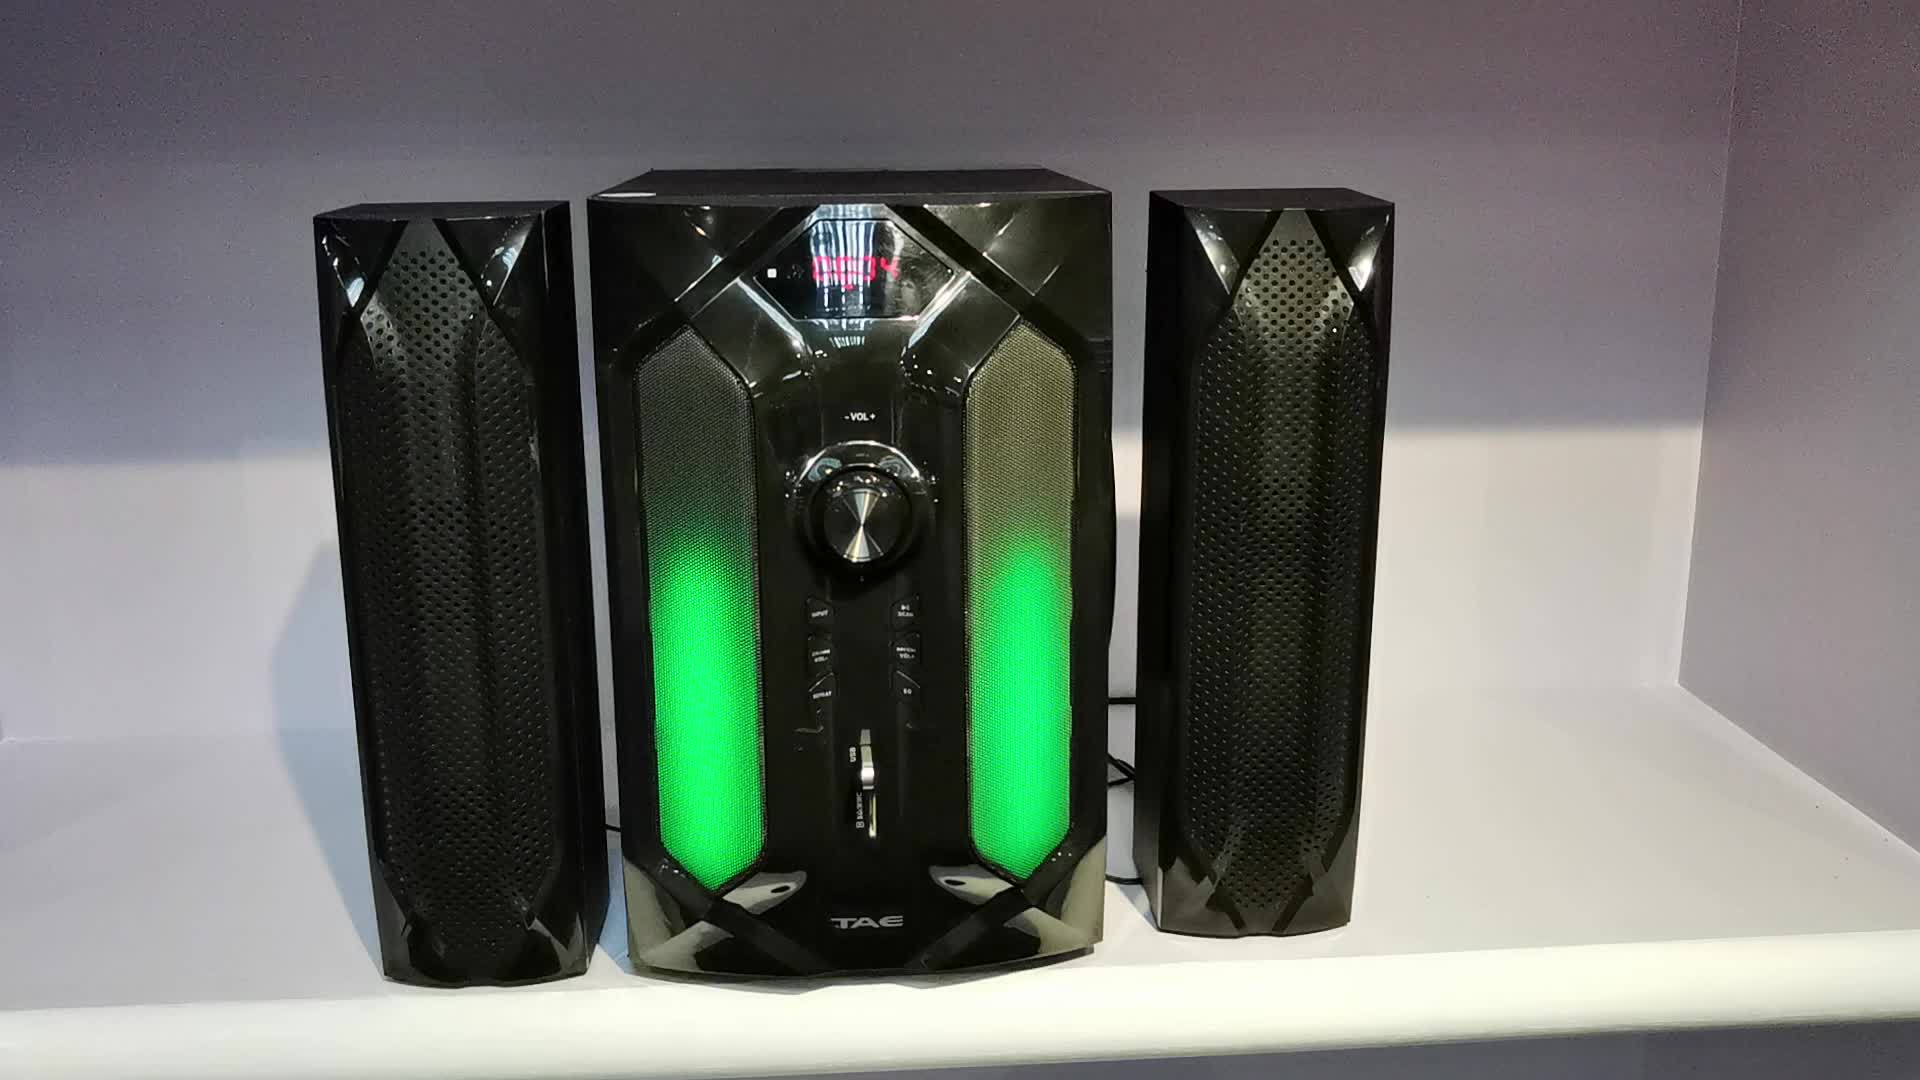 TK-881 2.1 3.1 5.1 Home Theater System 2.1 3.1 5.1 speakers With BT/FM/USB/MP3/SD/remote control